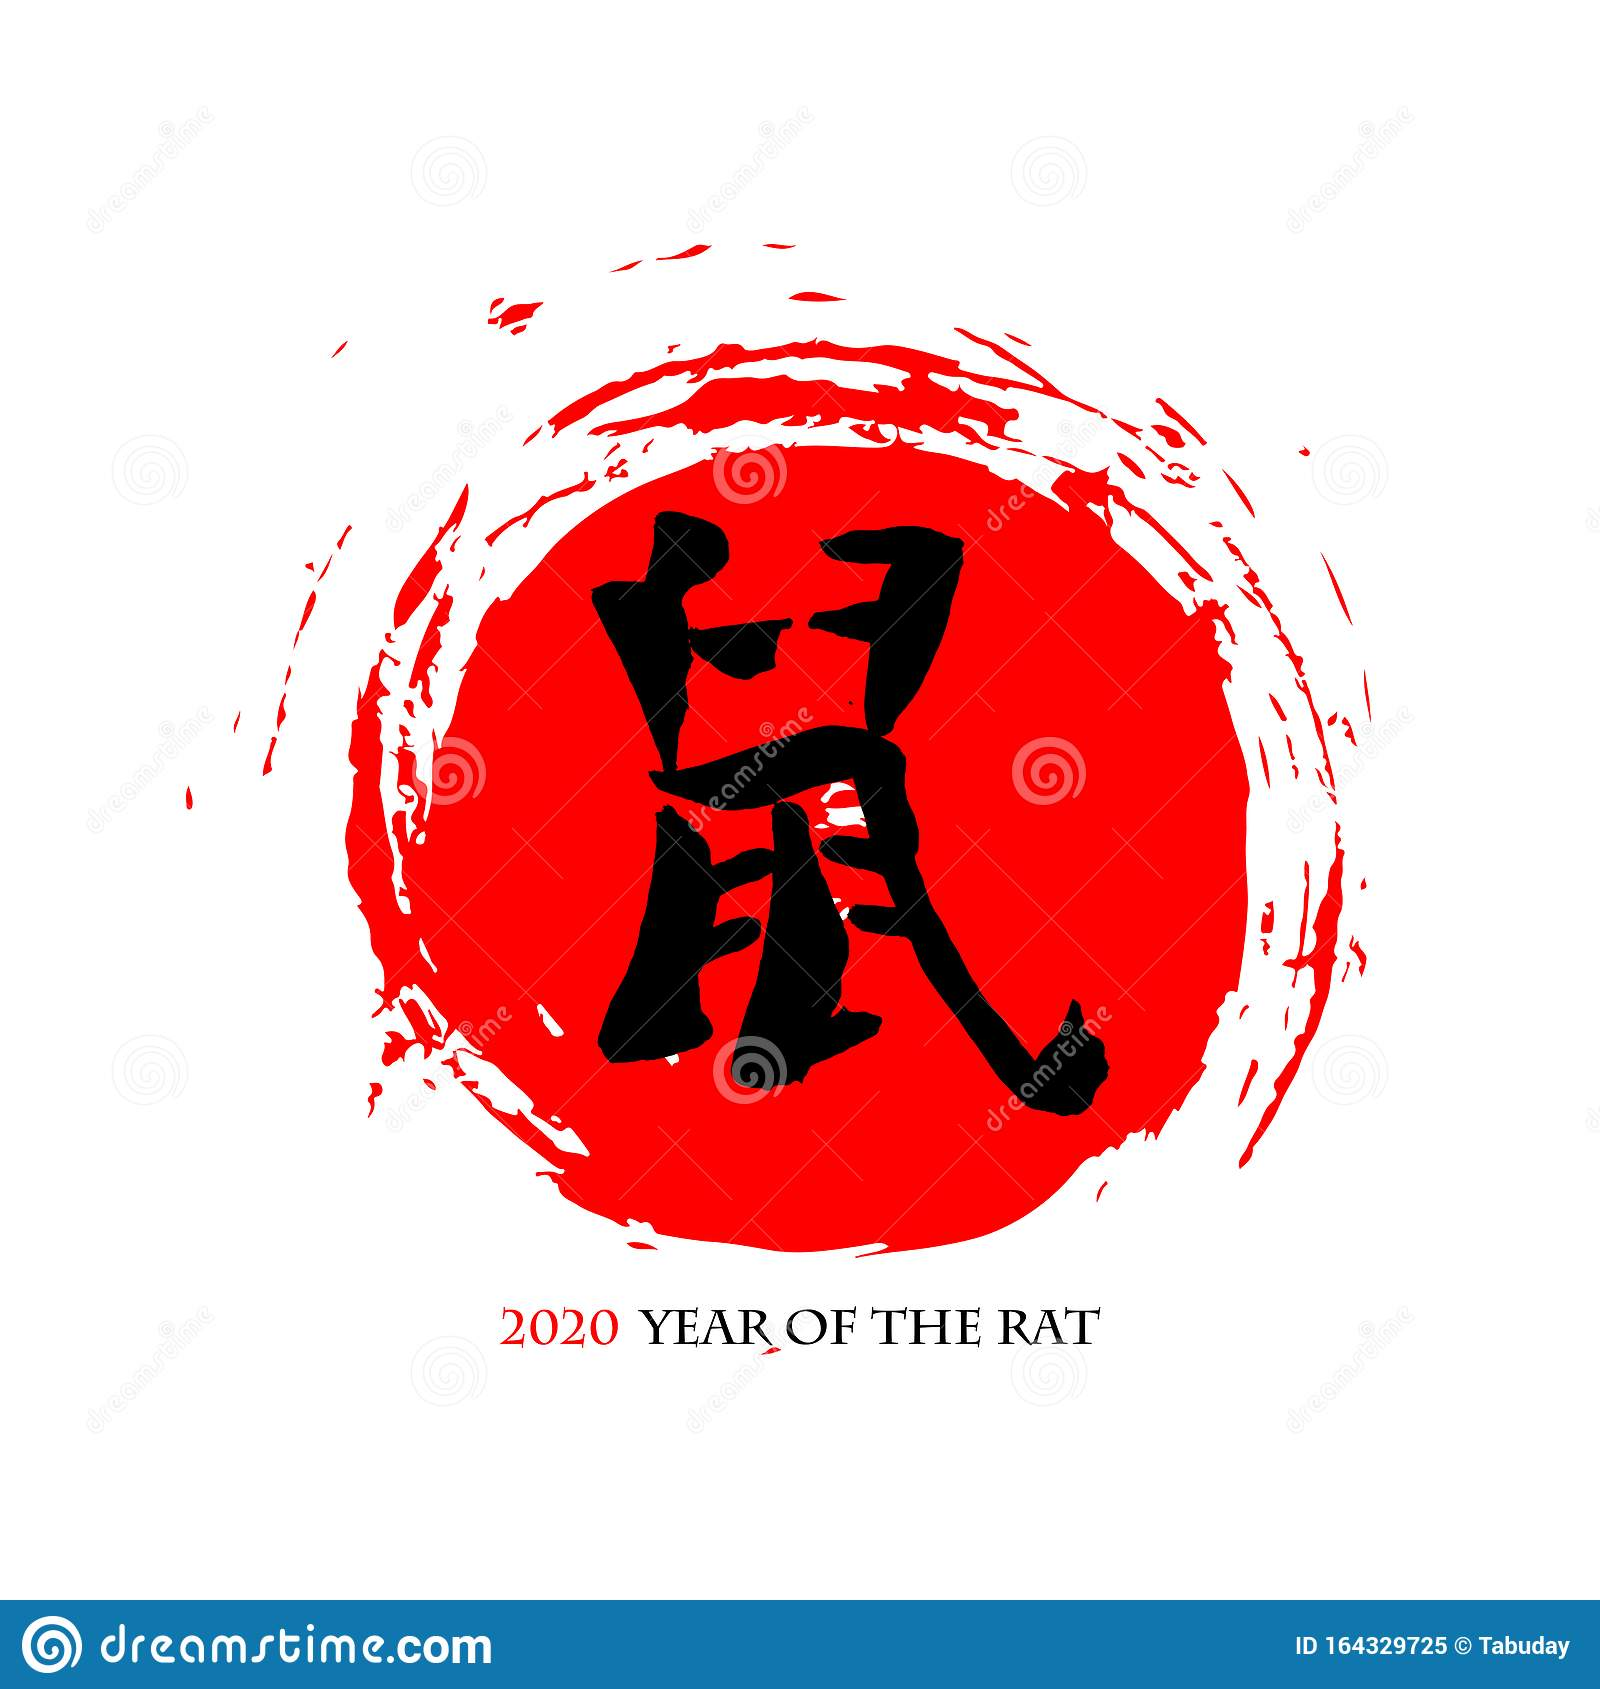 greeting card year of the rat stock vector illustration of lettering japan 164329725 dreamstime com